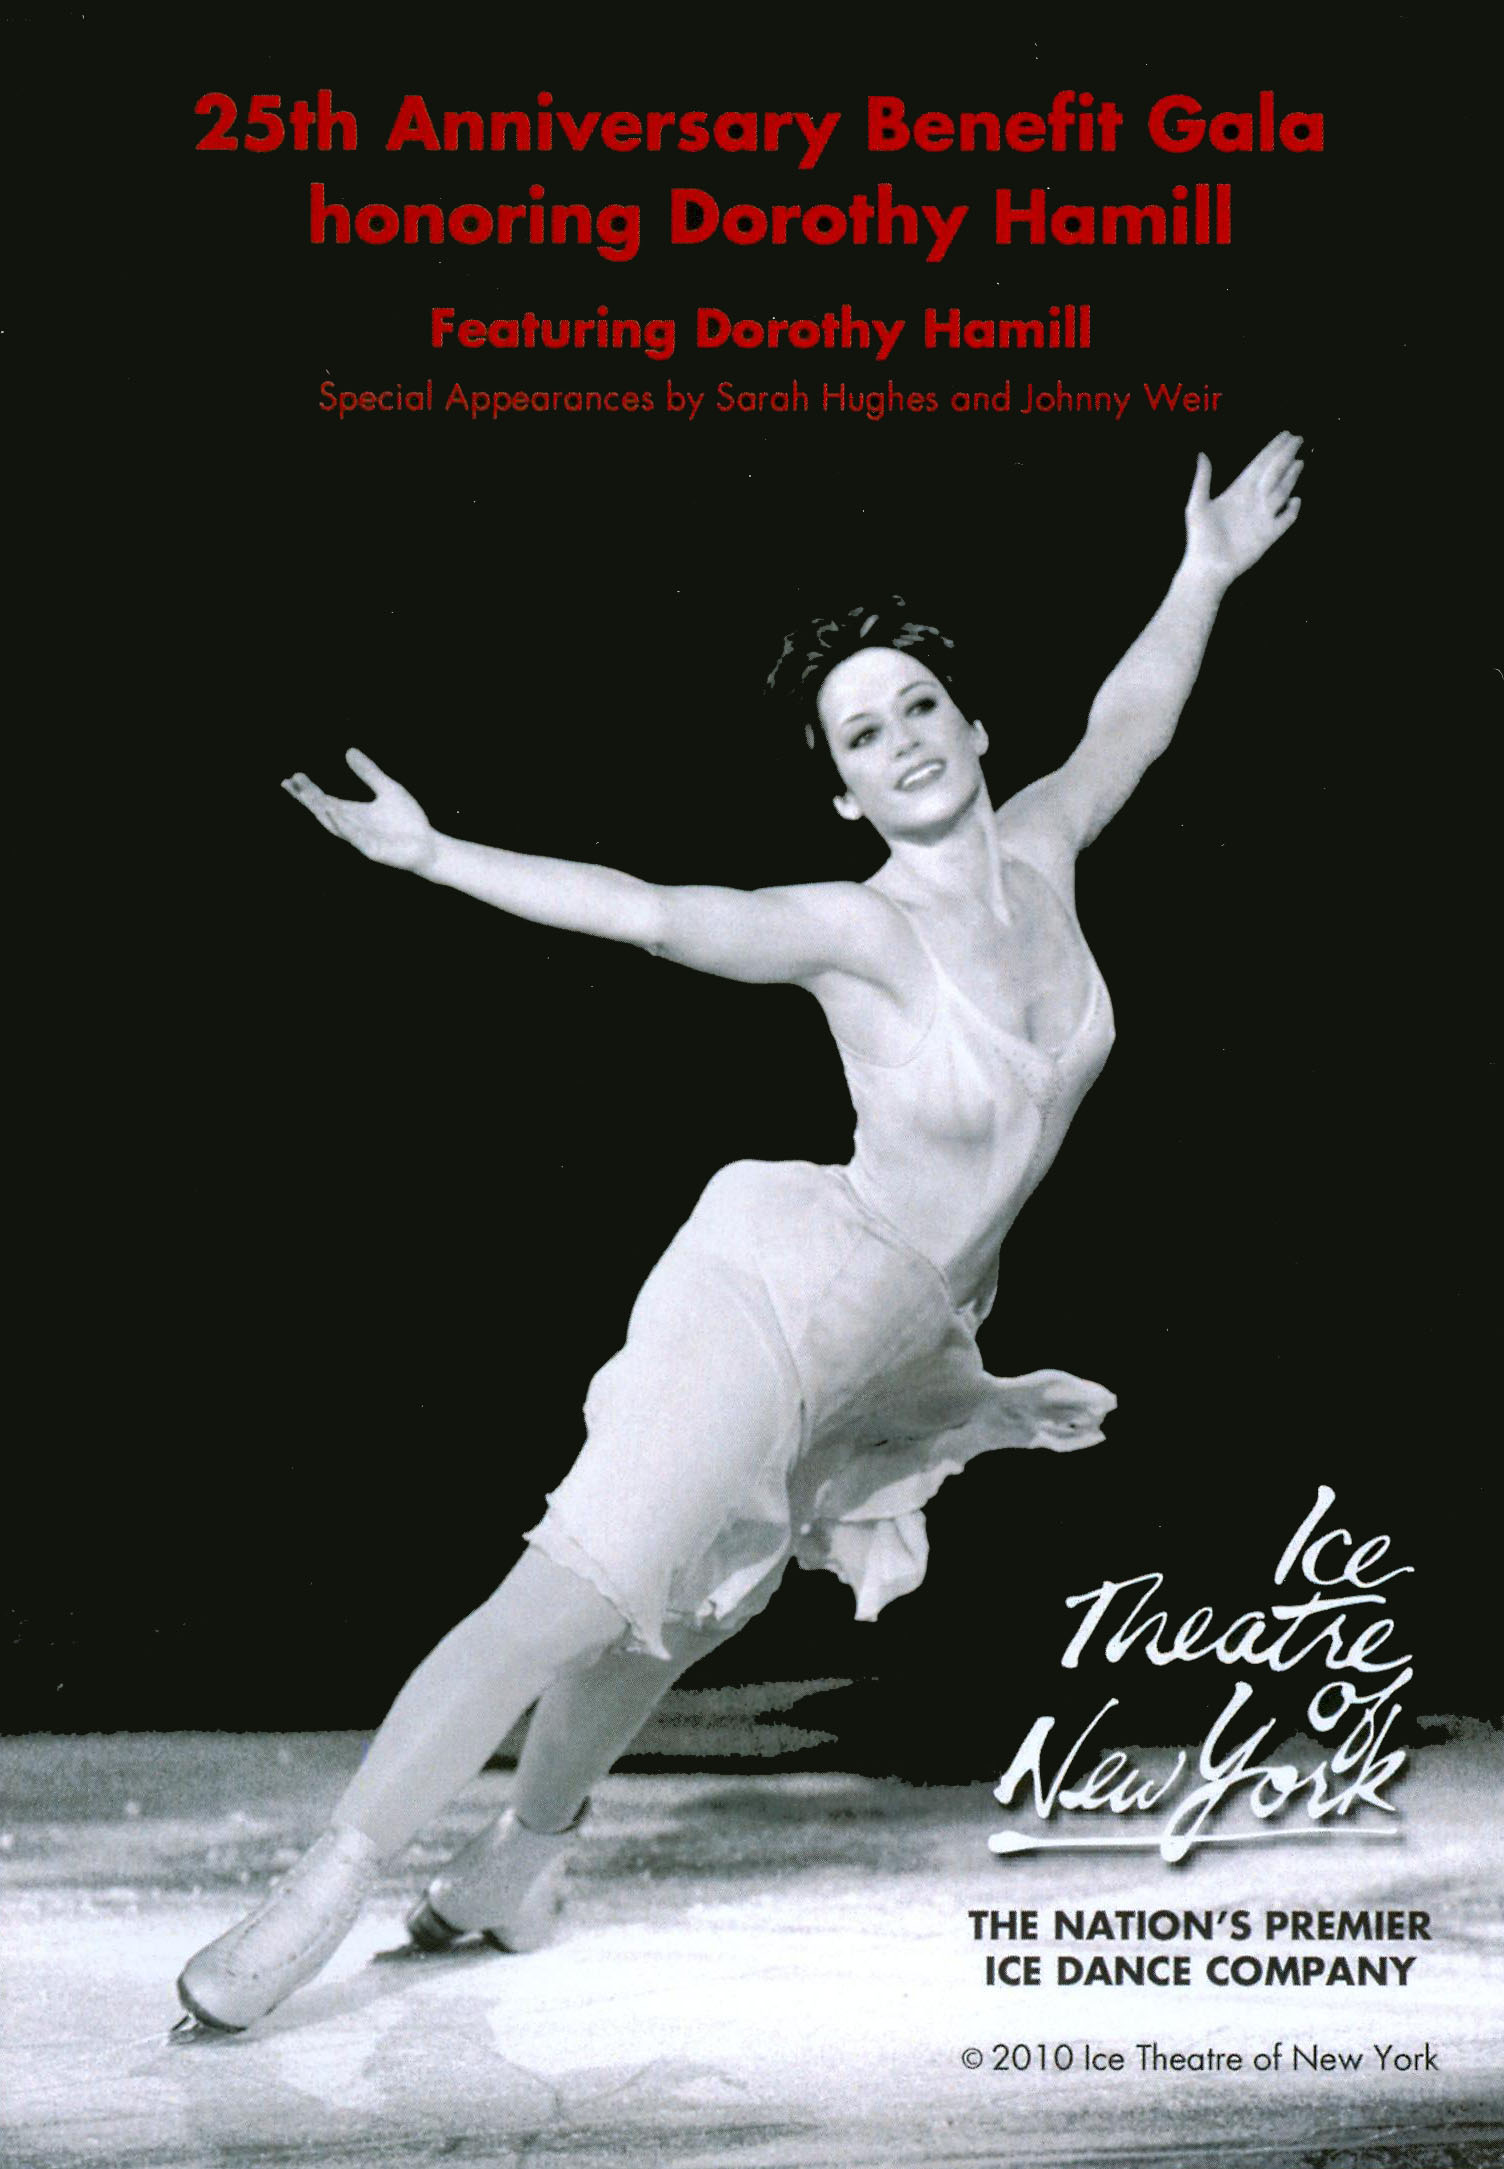 Ice Theatre of New York: 25th Benefit Gala Honoring Dorothy Hamill